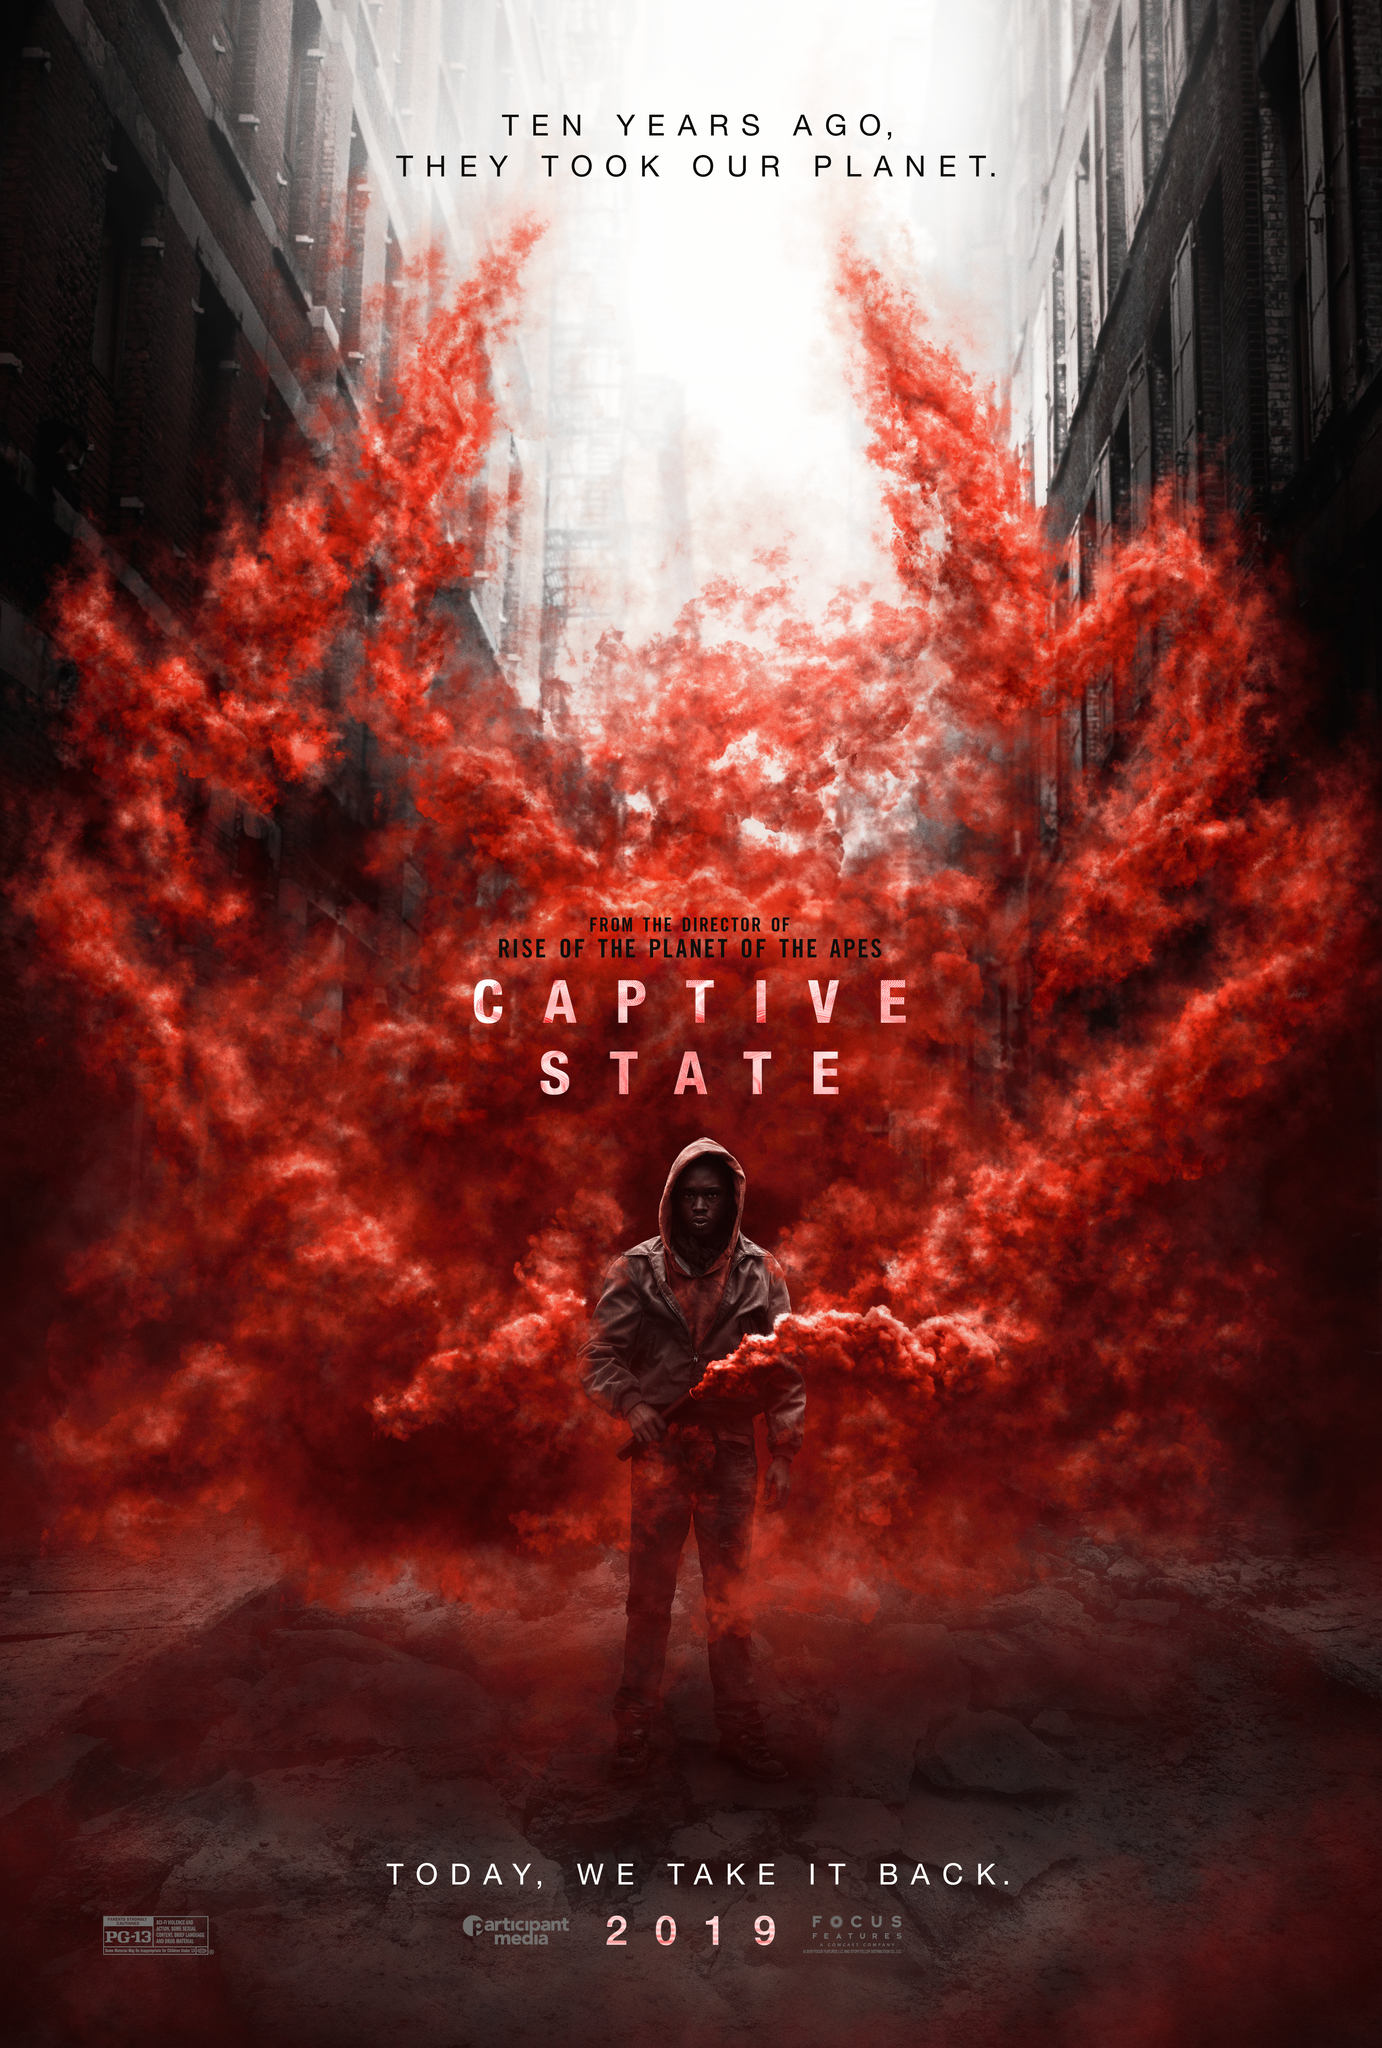 captive state poster_picture lock.jpg